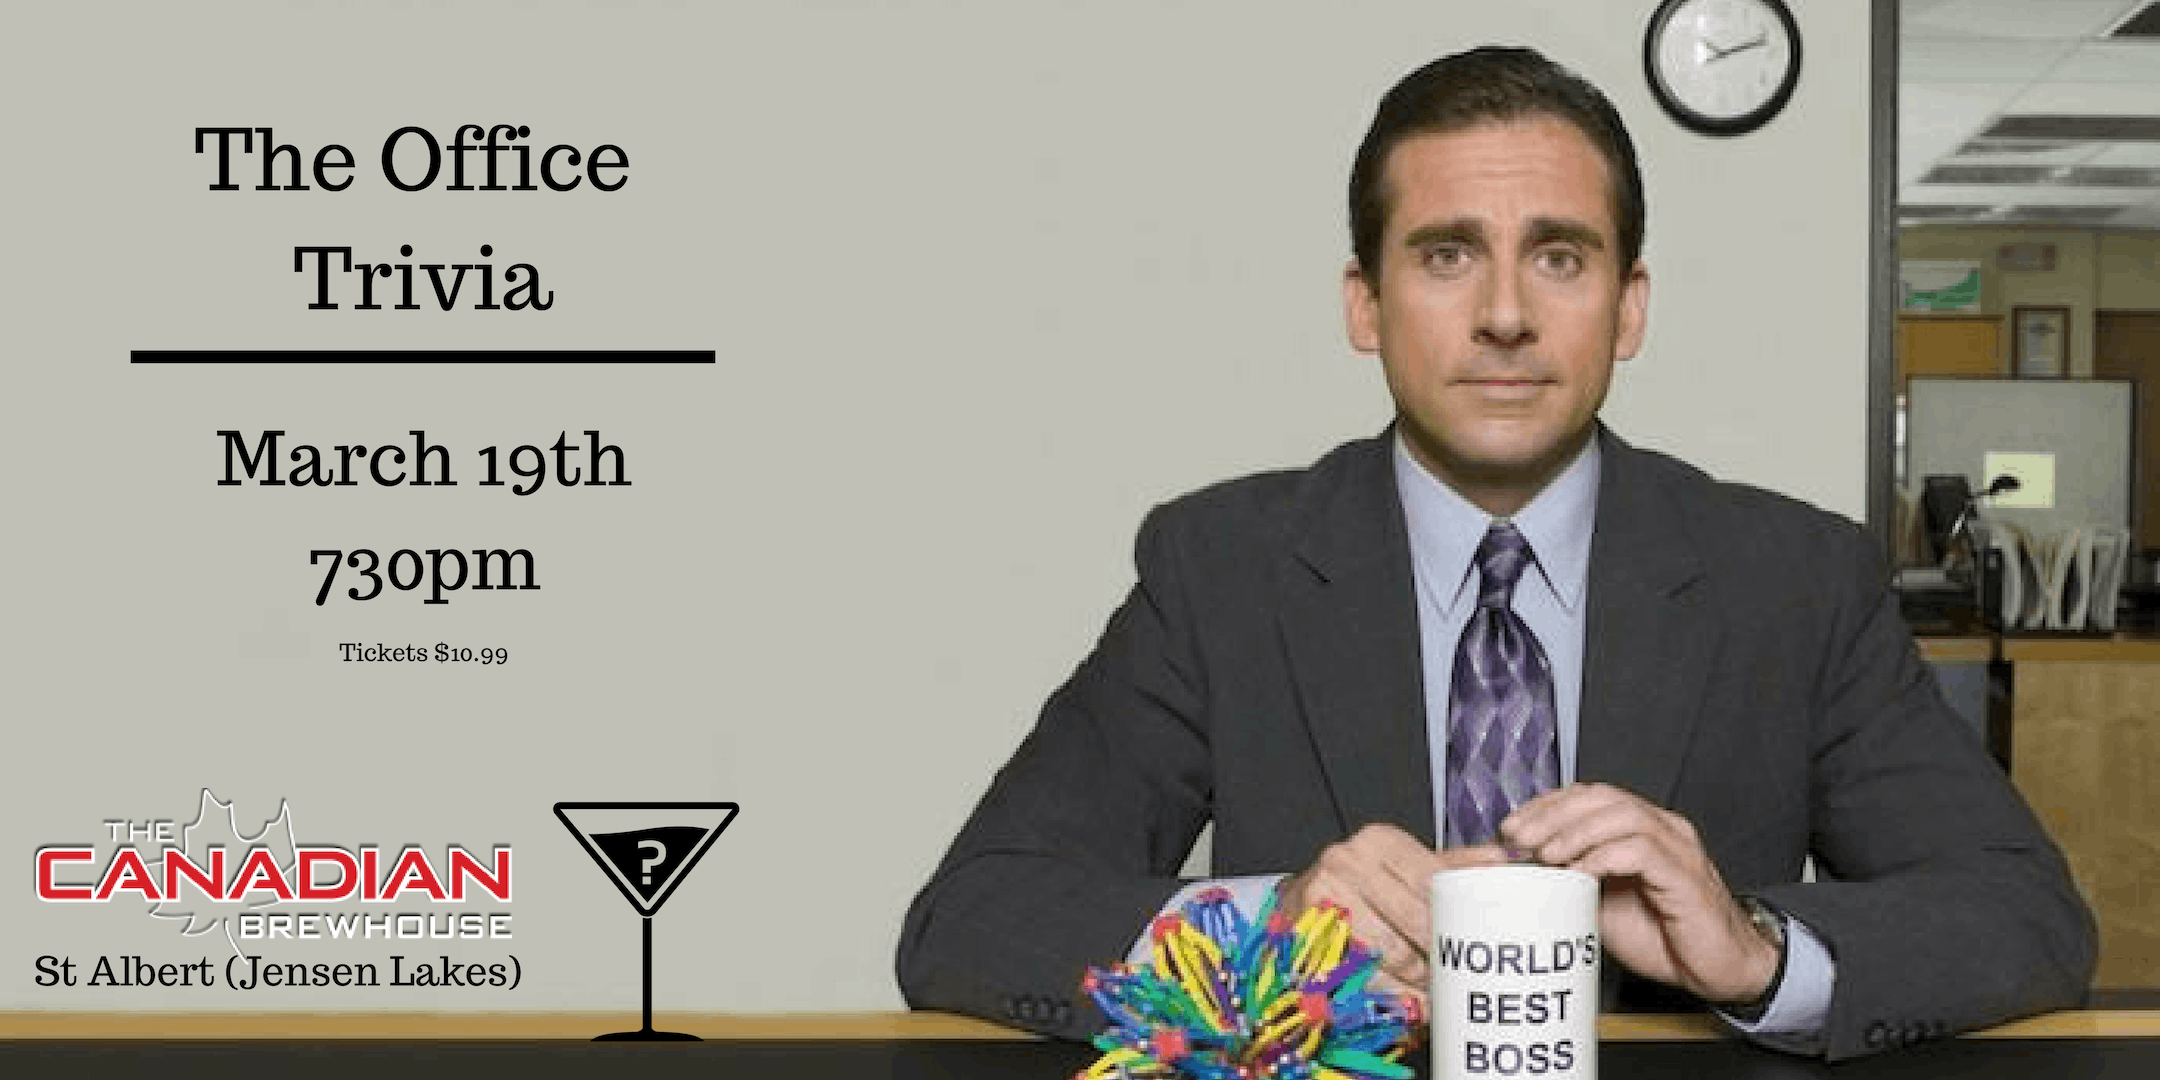 The Office Trivia - March 19th 730pm Canadian